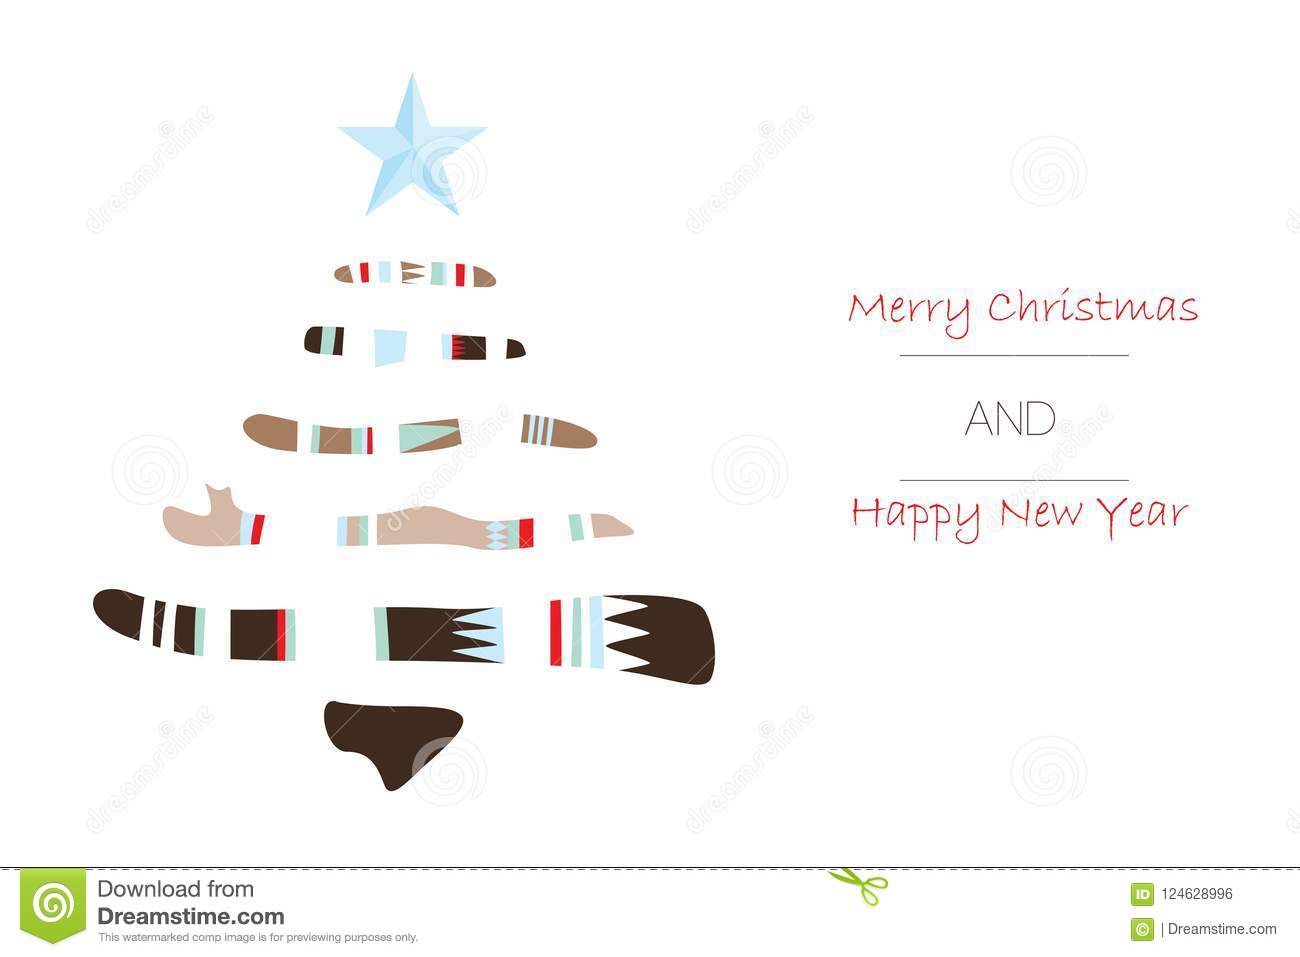 Merry Christmas And Happy New Year Greeting Card With Christmas Tree ...